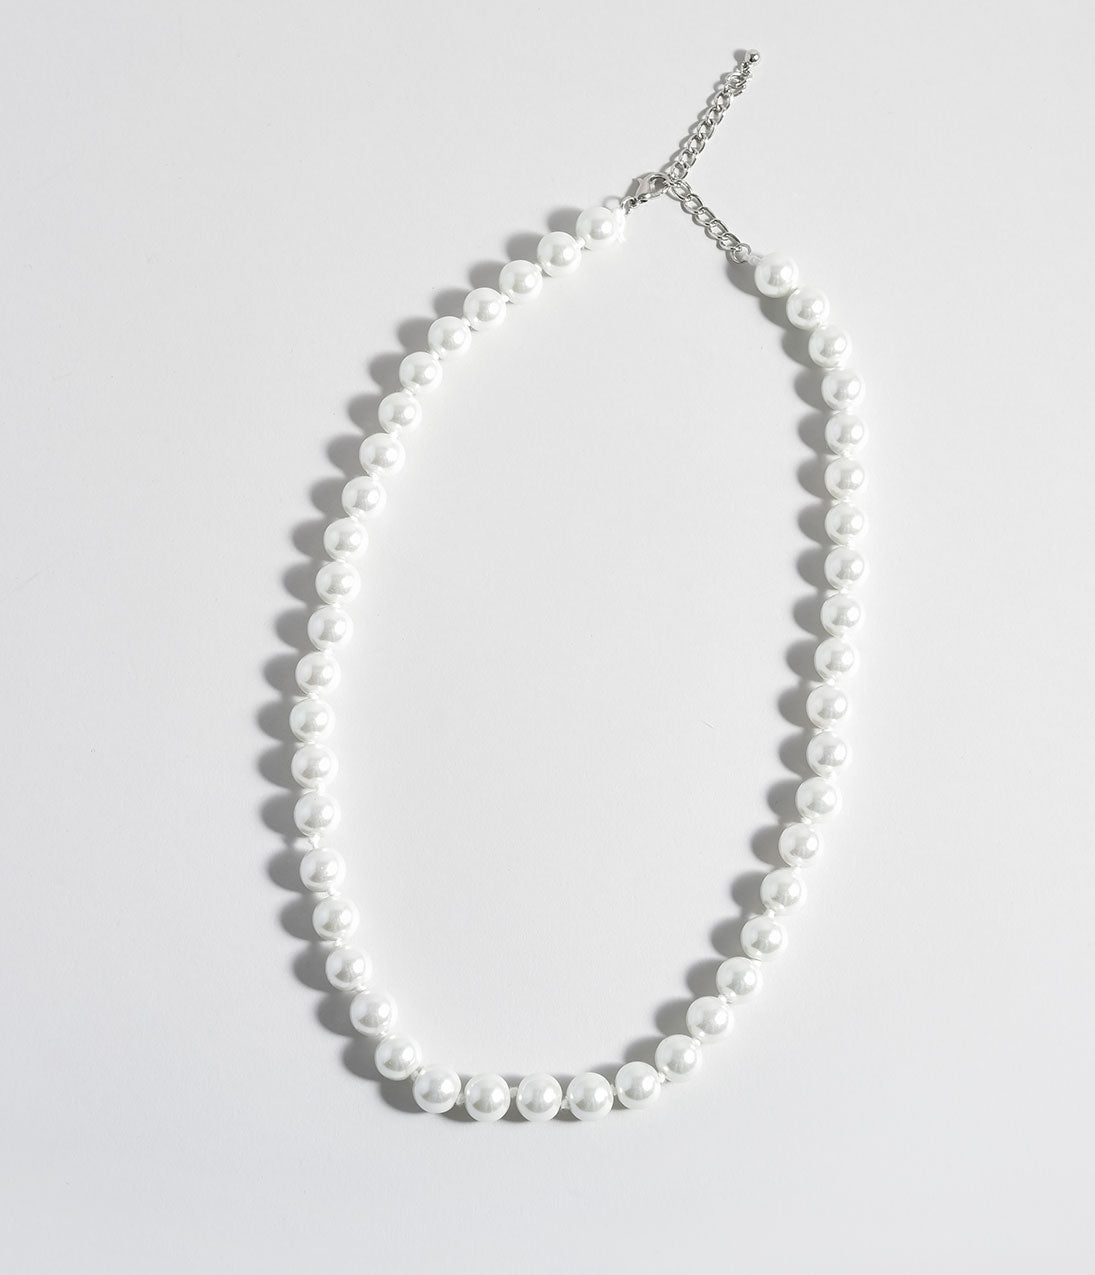 8 Easy 1920s Costumes You Can Make Ivory Pearl Single Row Beaded Necklace $22.00 AT vintagedancer.com